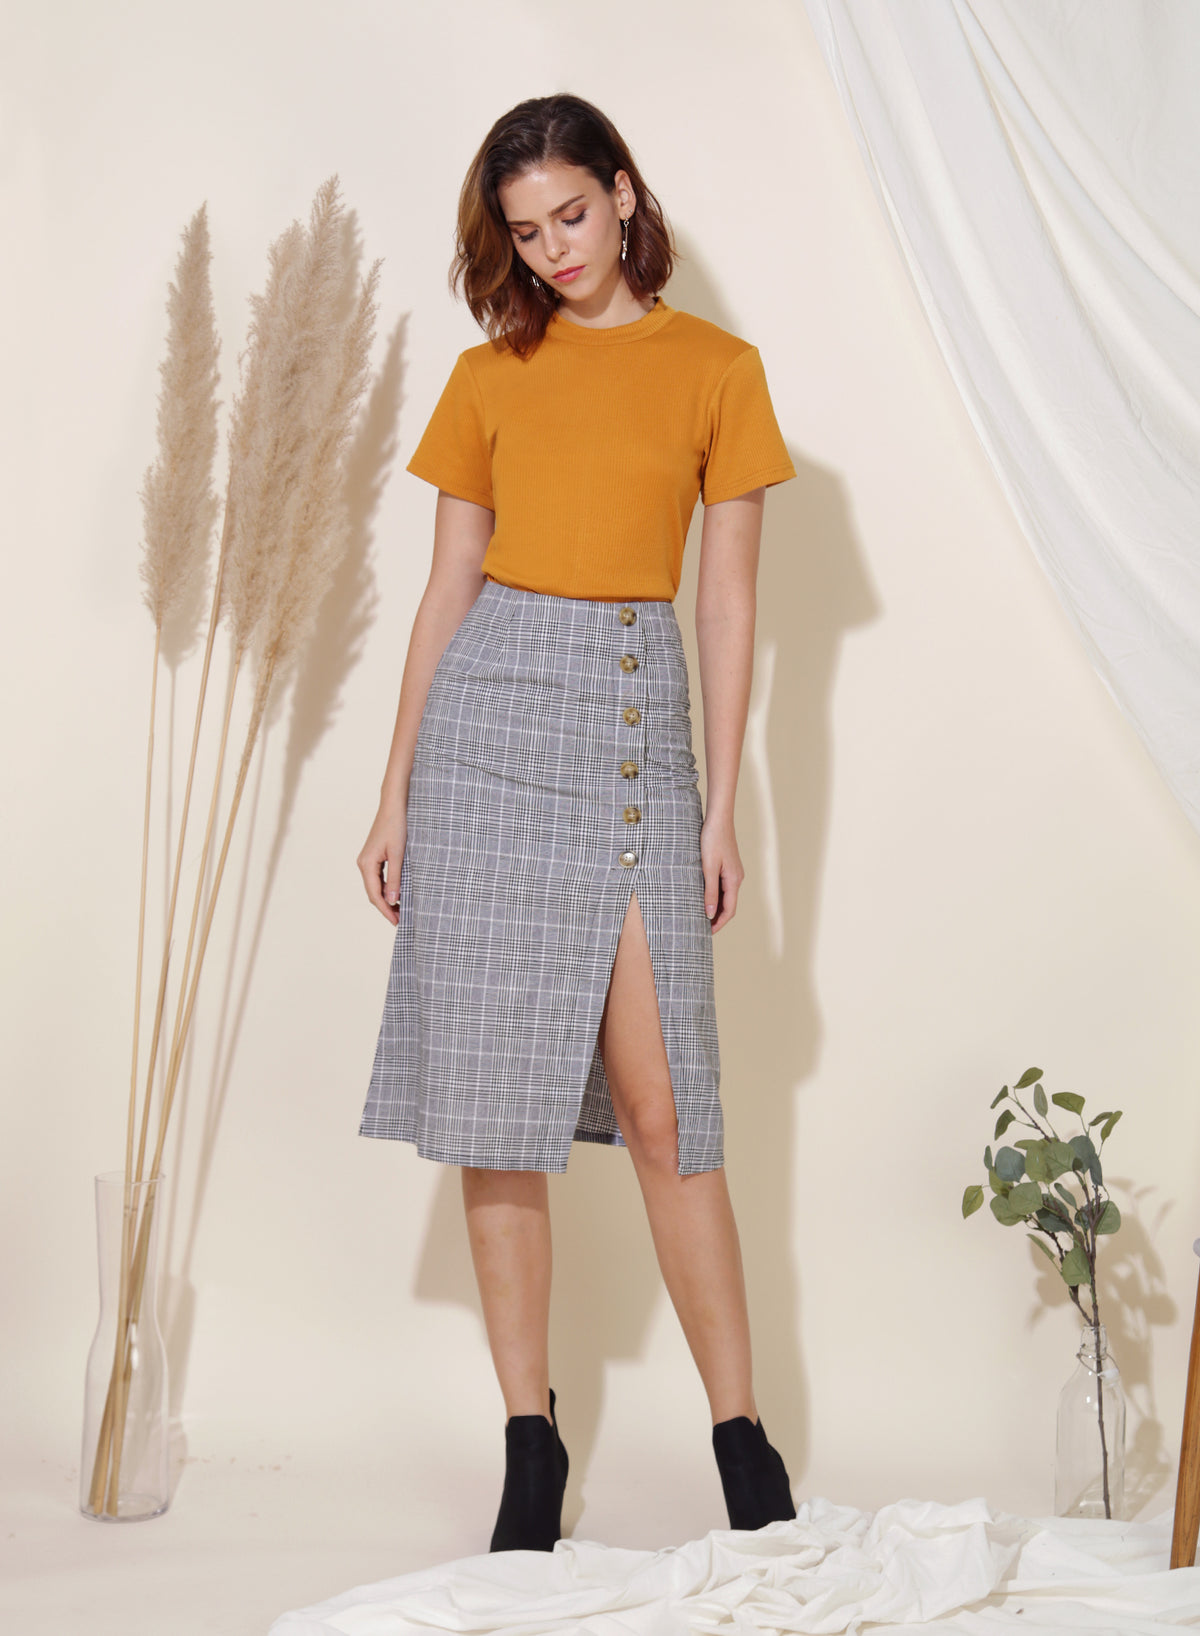 Evolve Ribbed Knit Top (Ochre) - And Well Dressed